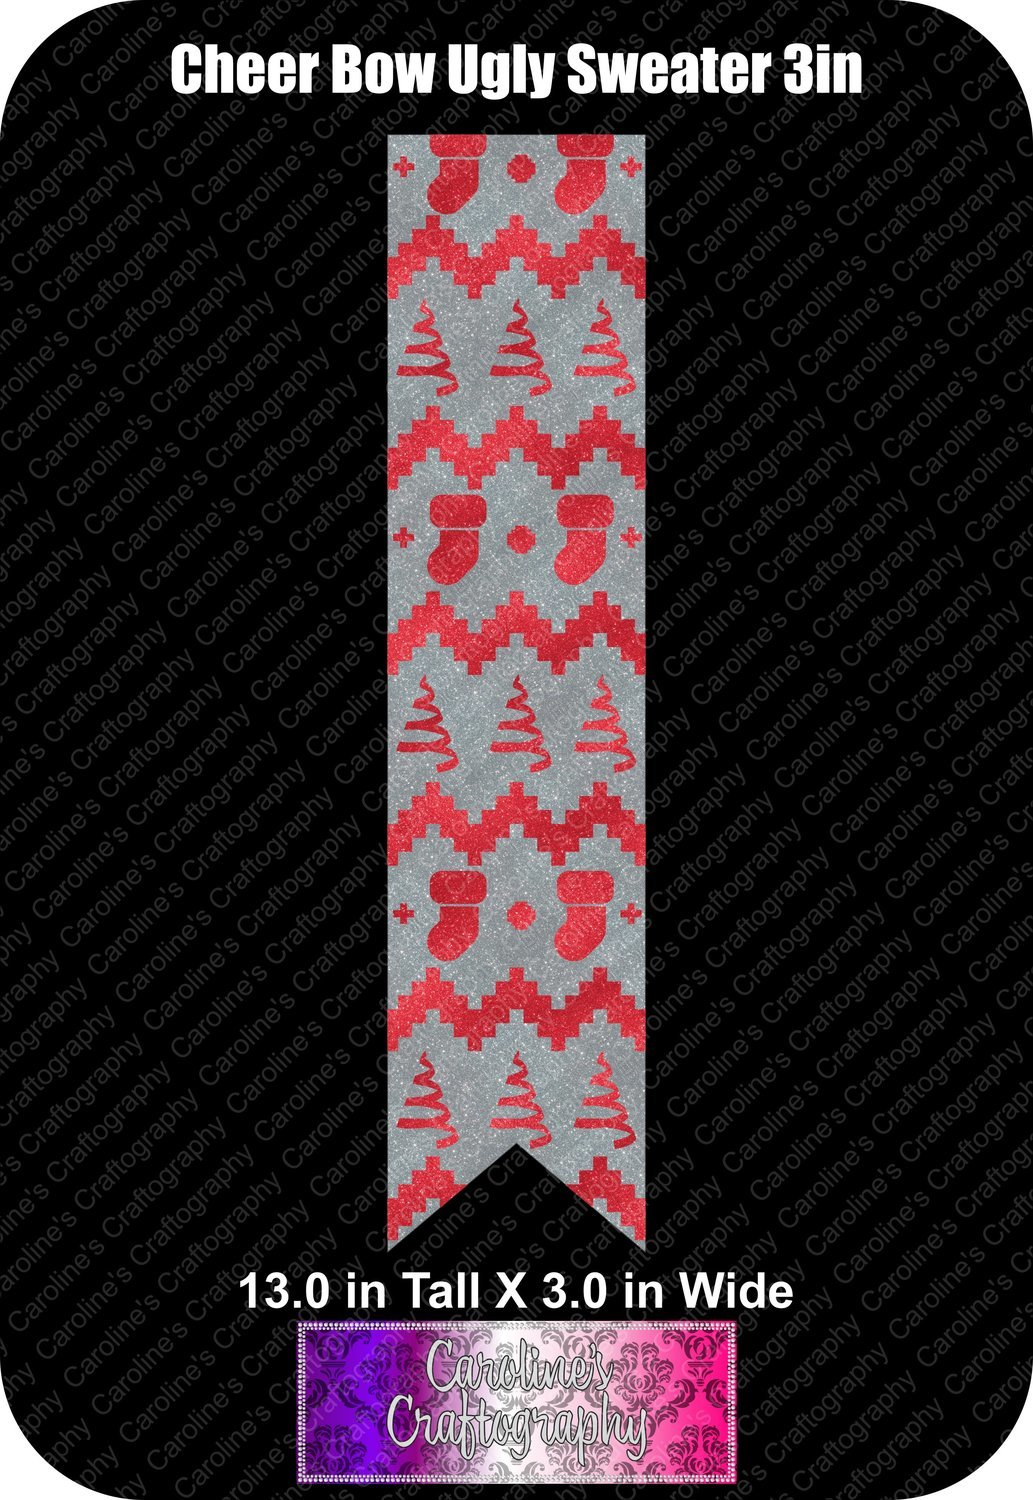 Ugly Sweater 3in Cheer Bow Vinyl